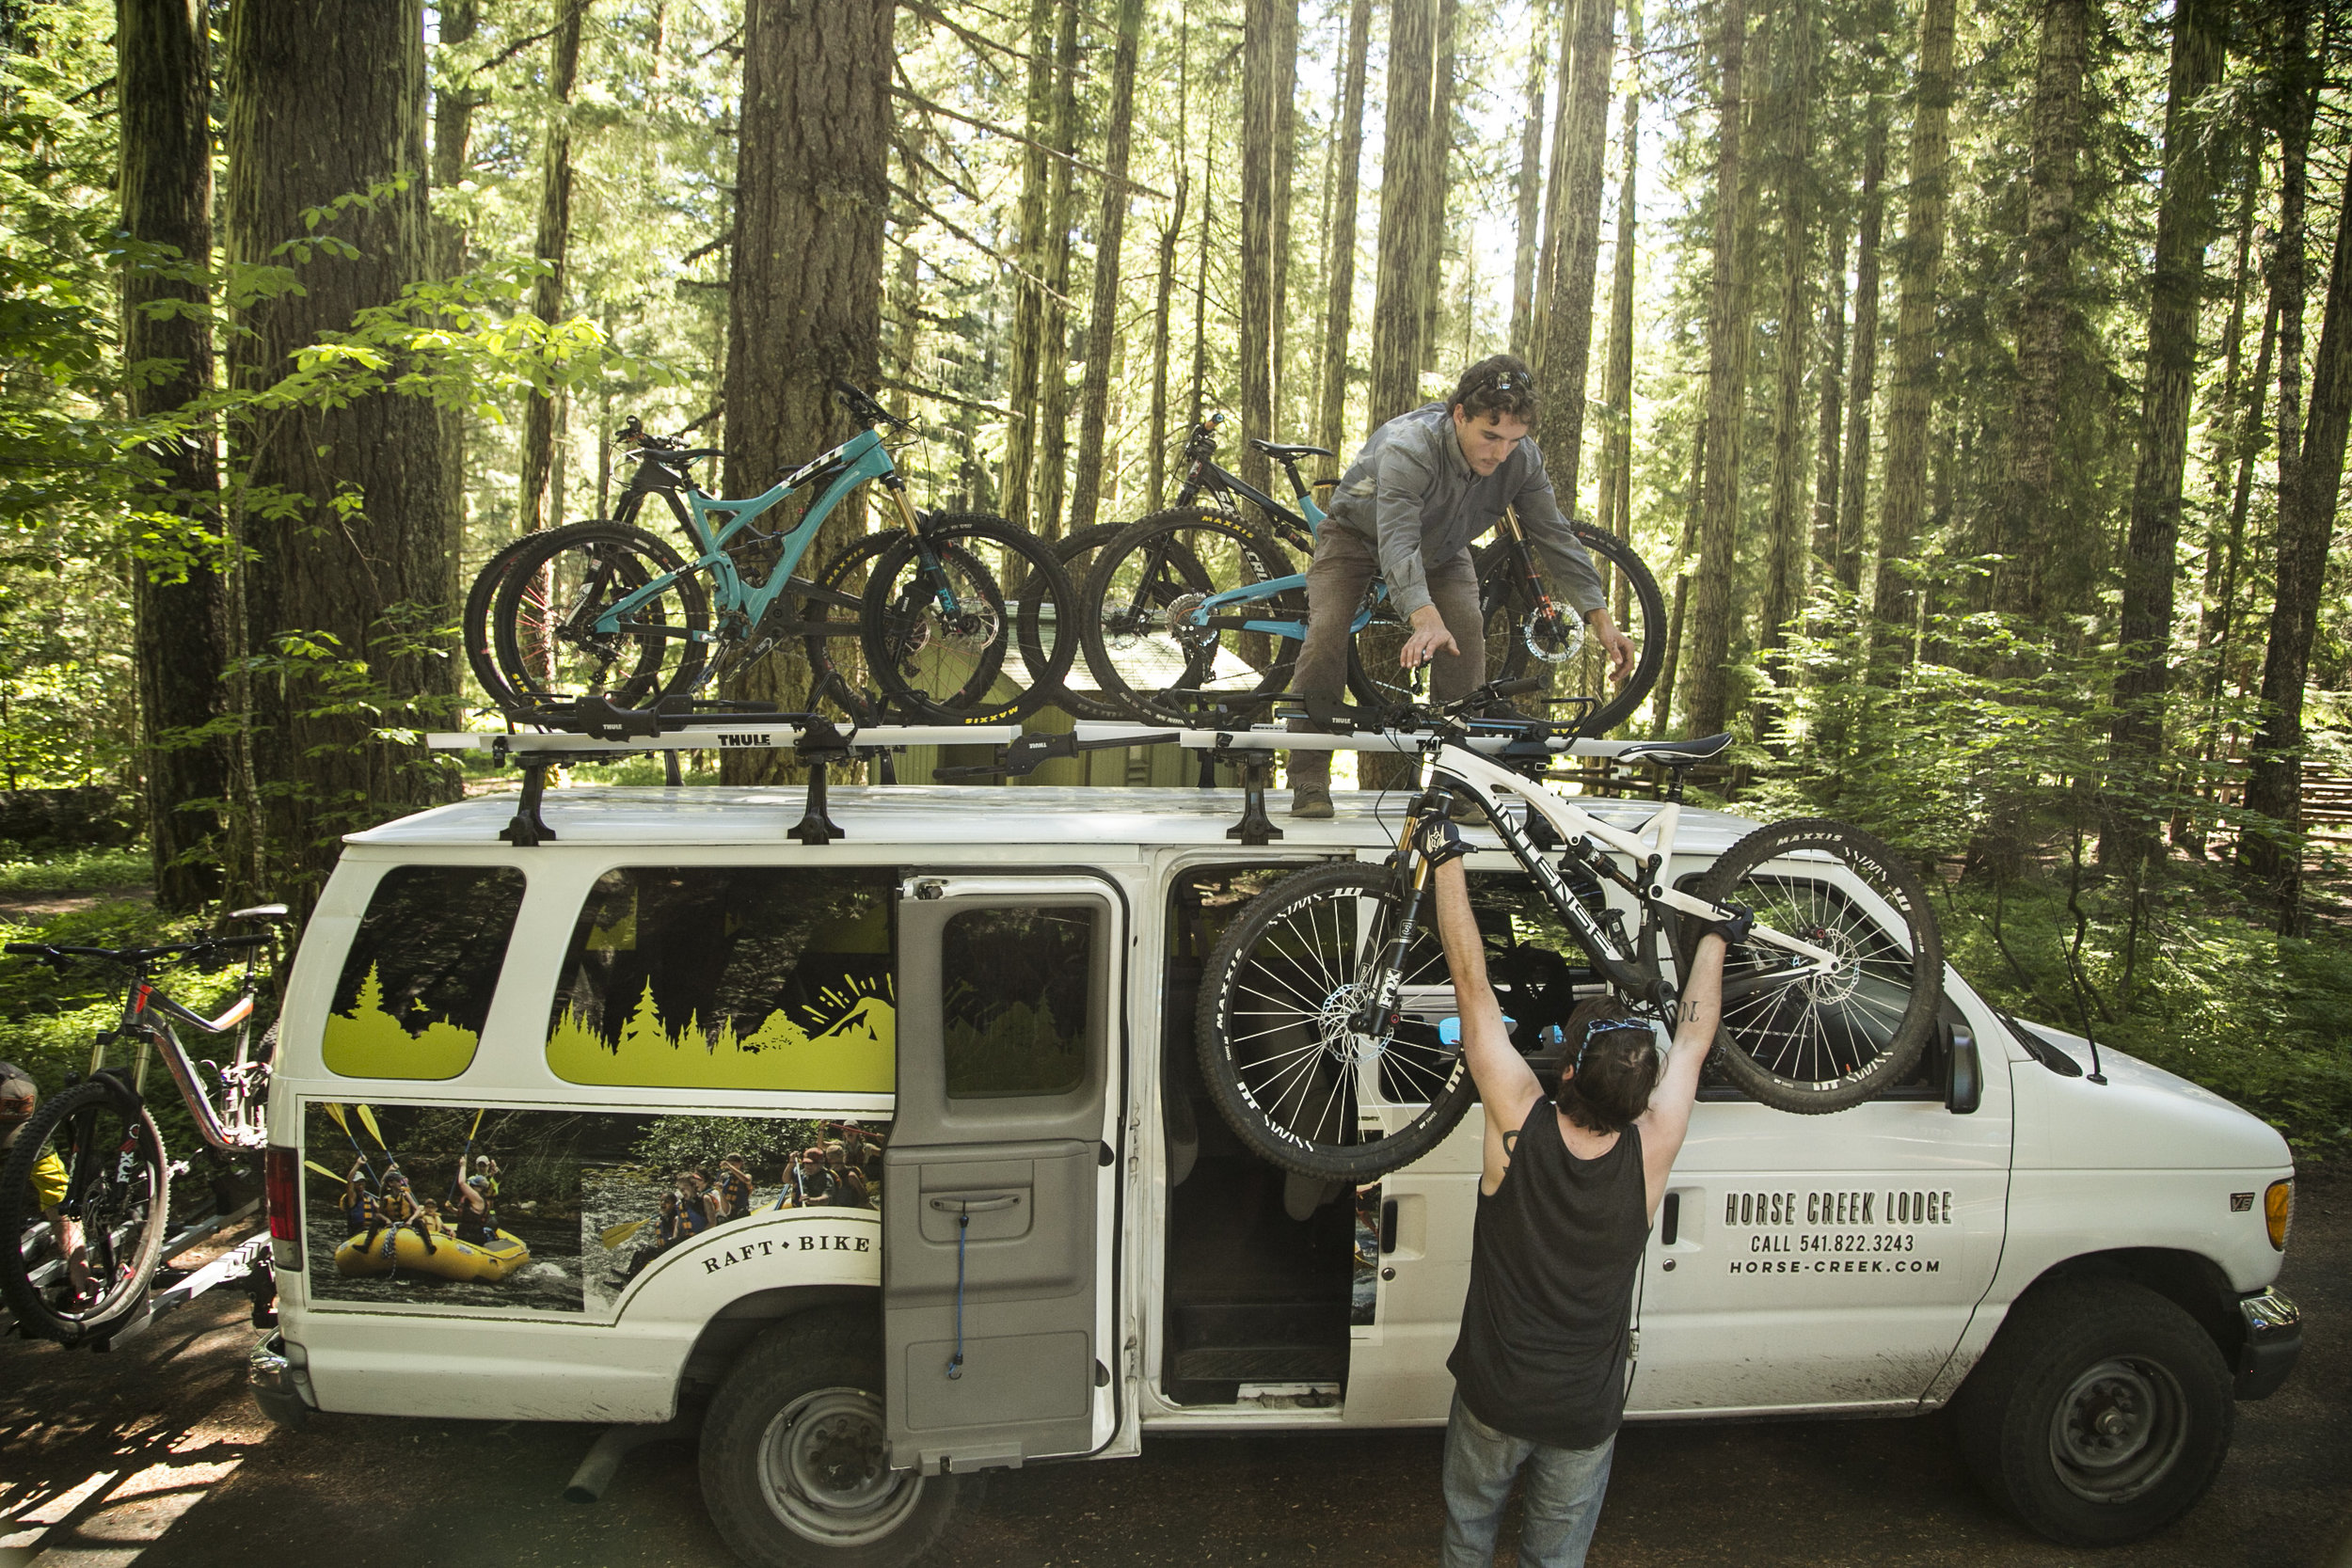 A special thank you to Horse Creek Lodge for their generosity in getting us around the forest with our bikes and gear.